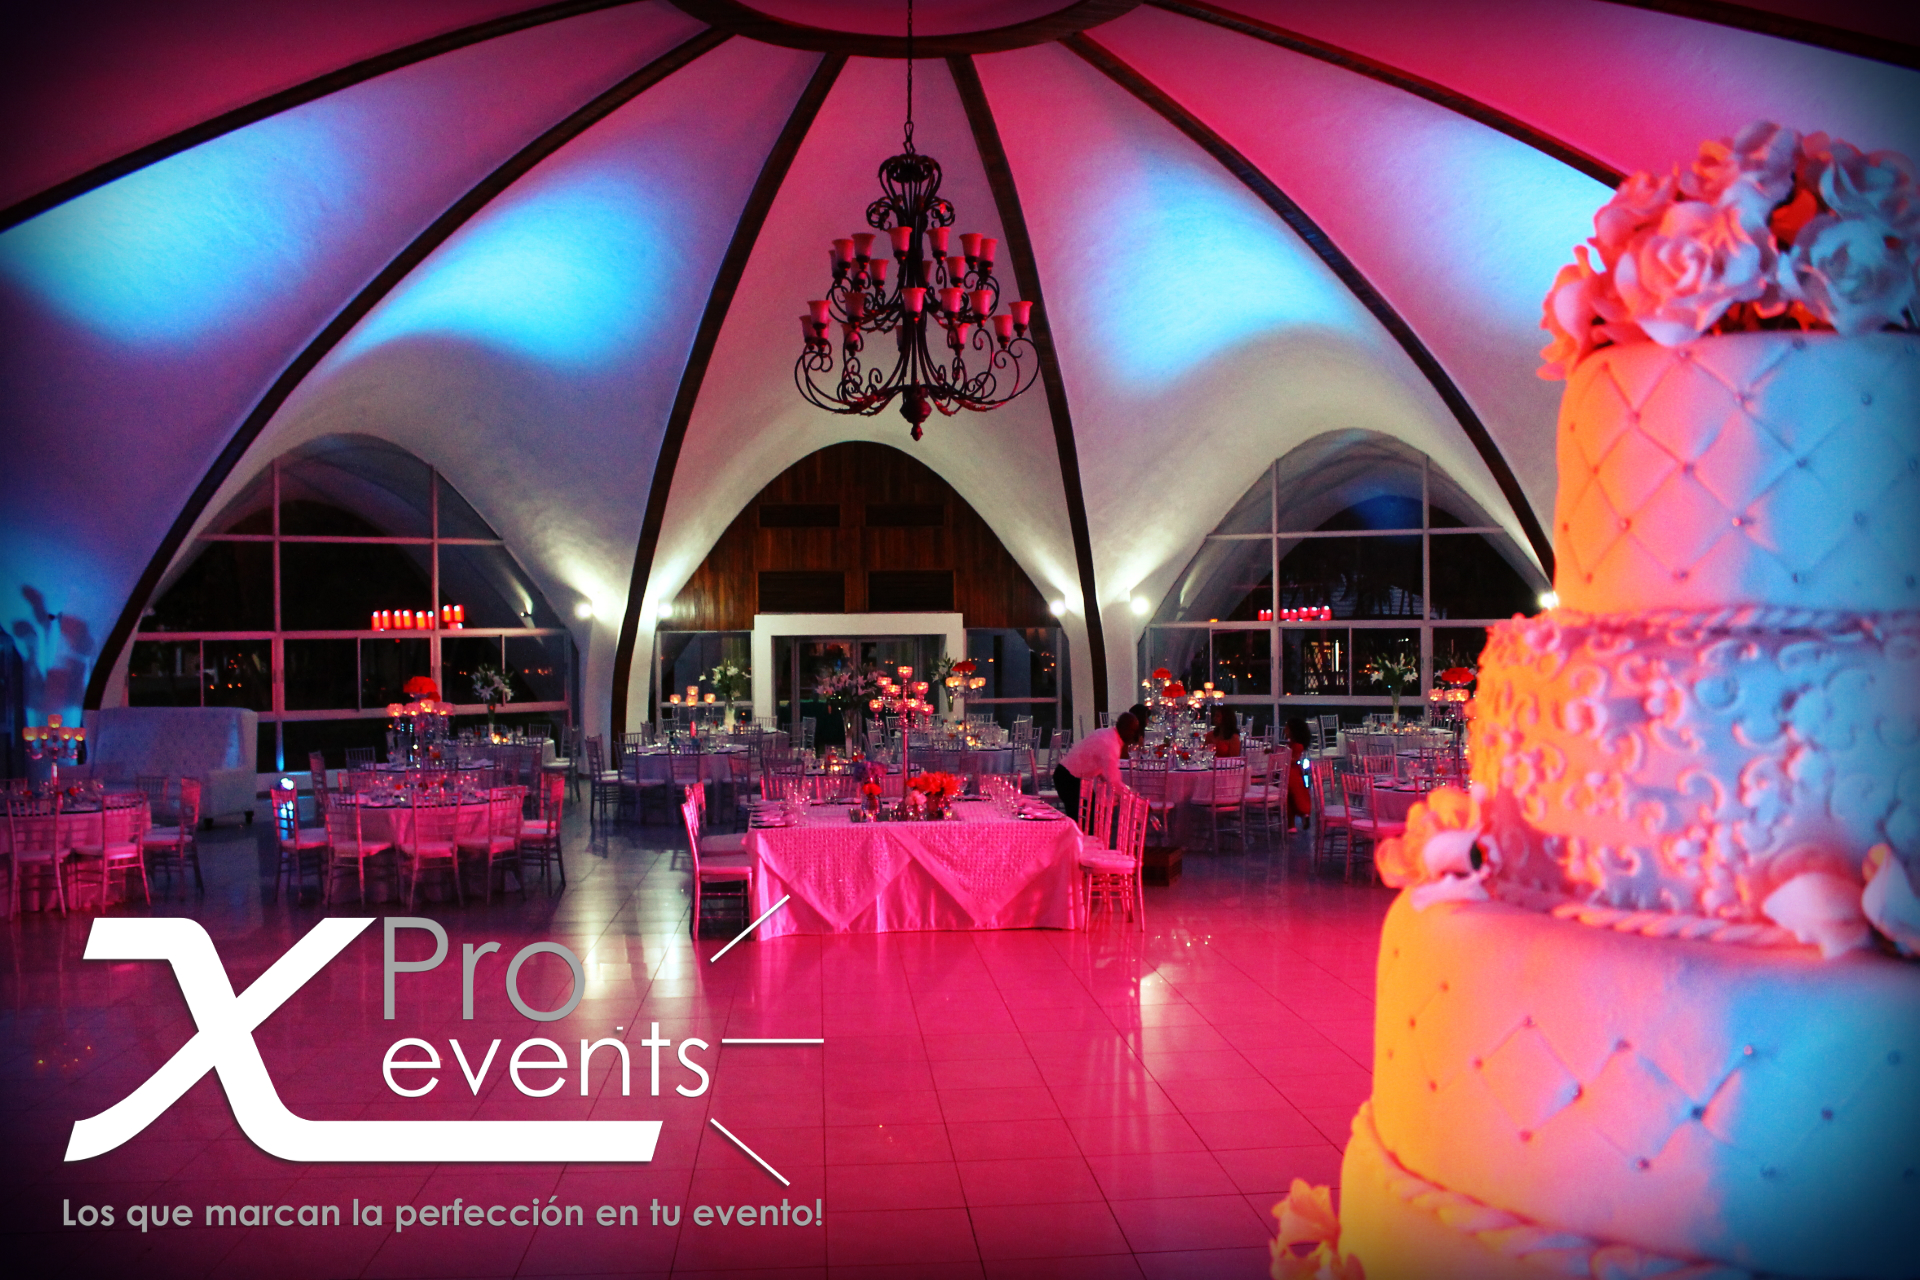 www.Xproevents.com - Iluminacion decorativa LED.JPG